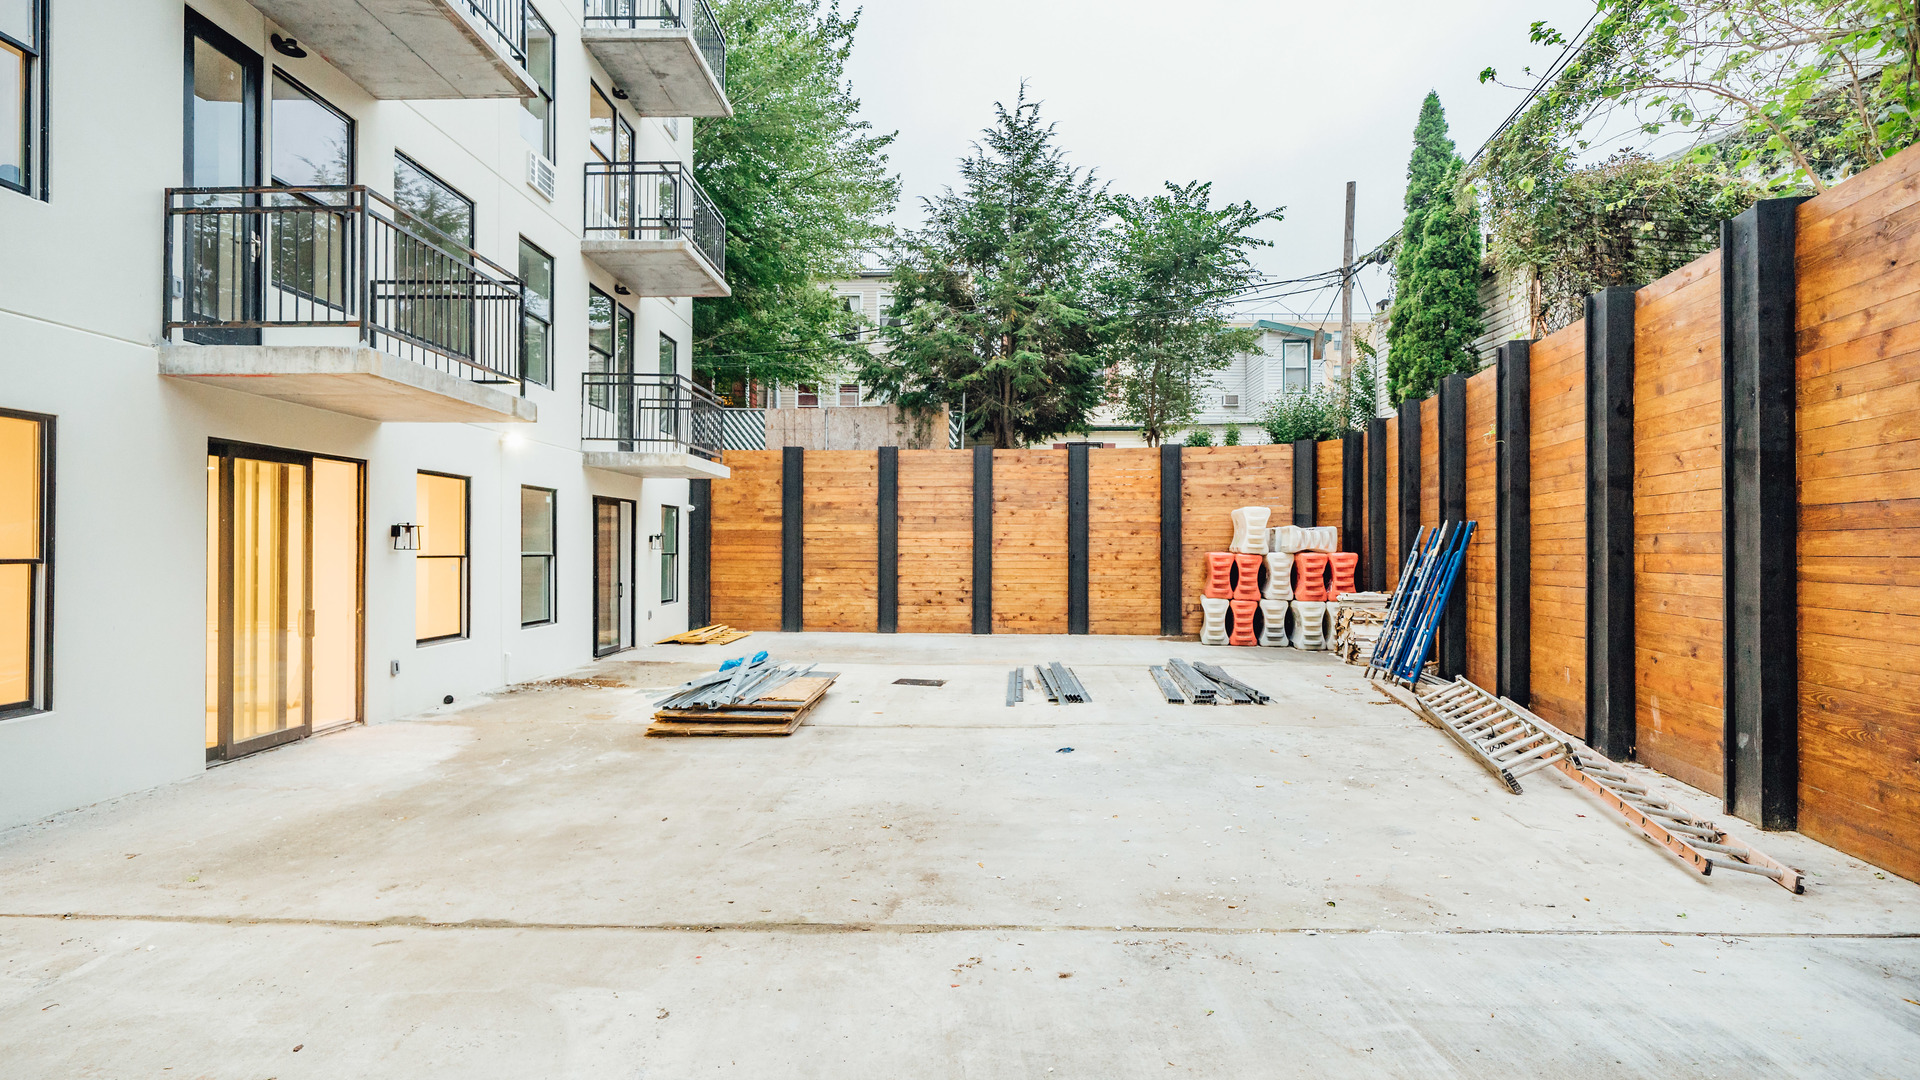 011 004 987 willoughby ave 22